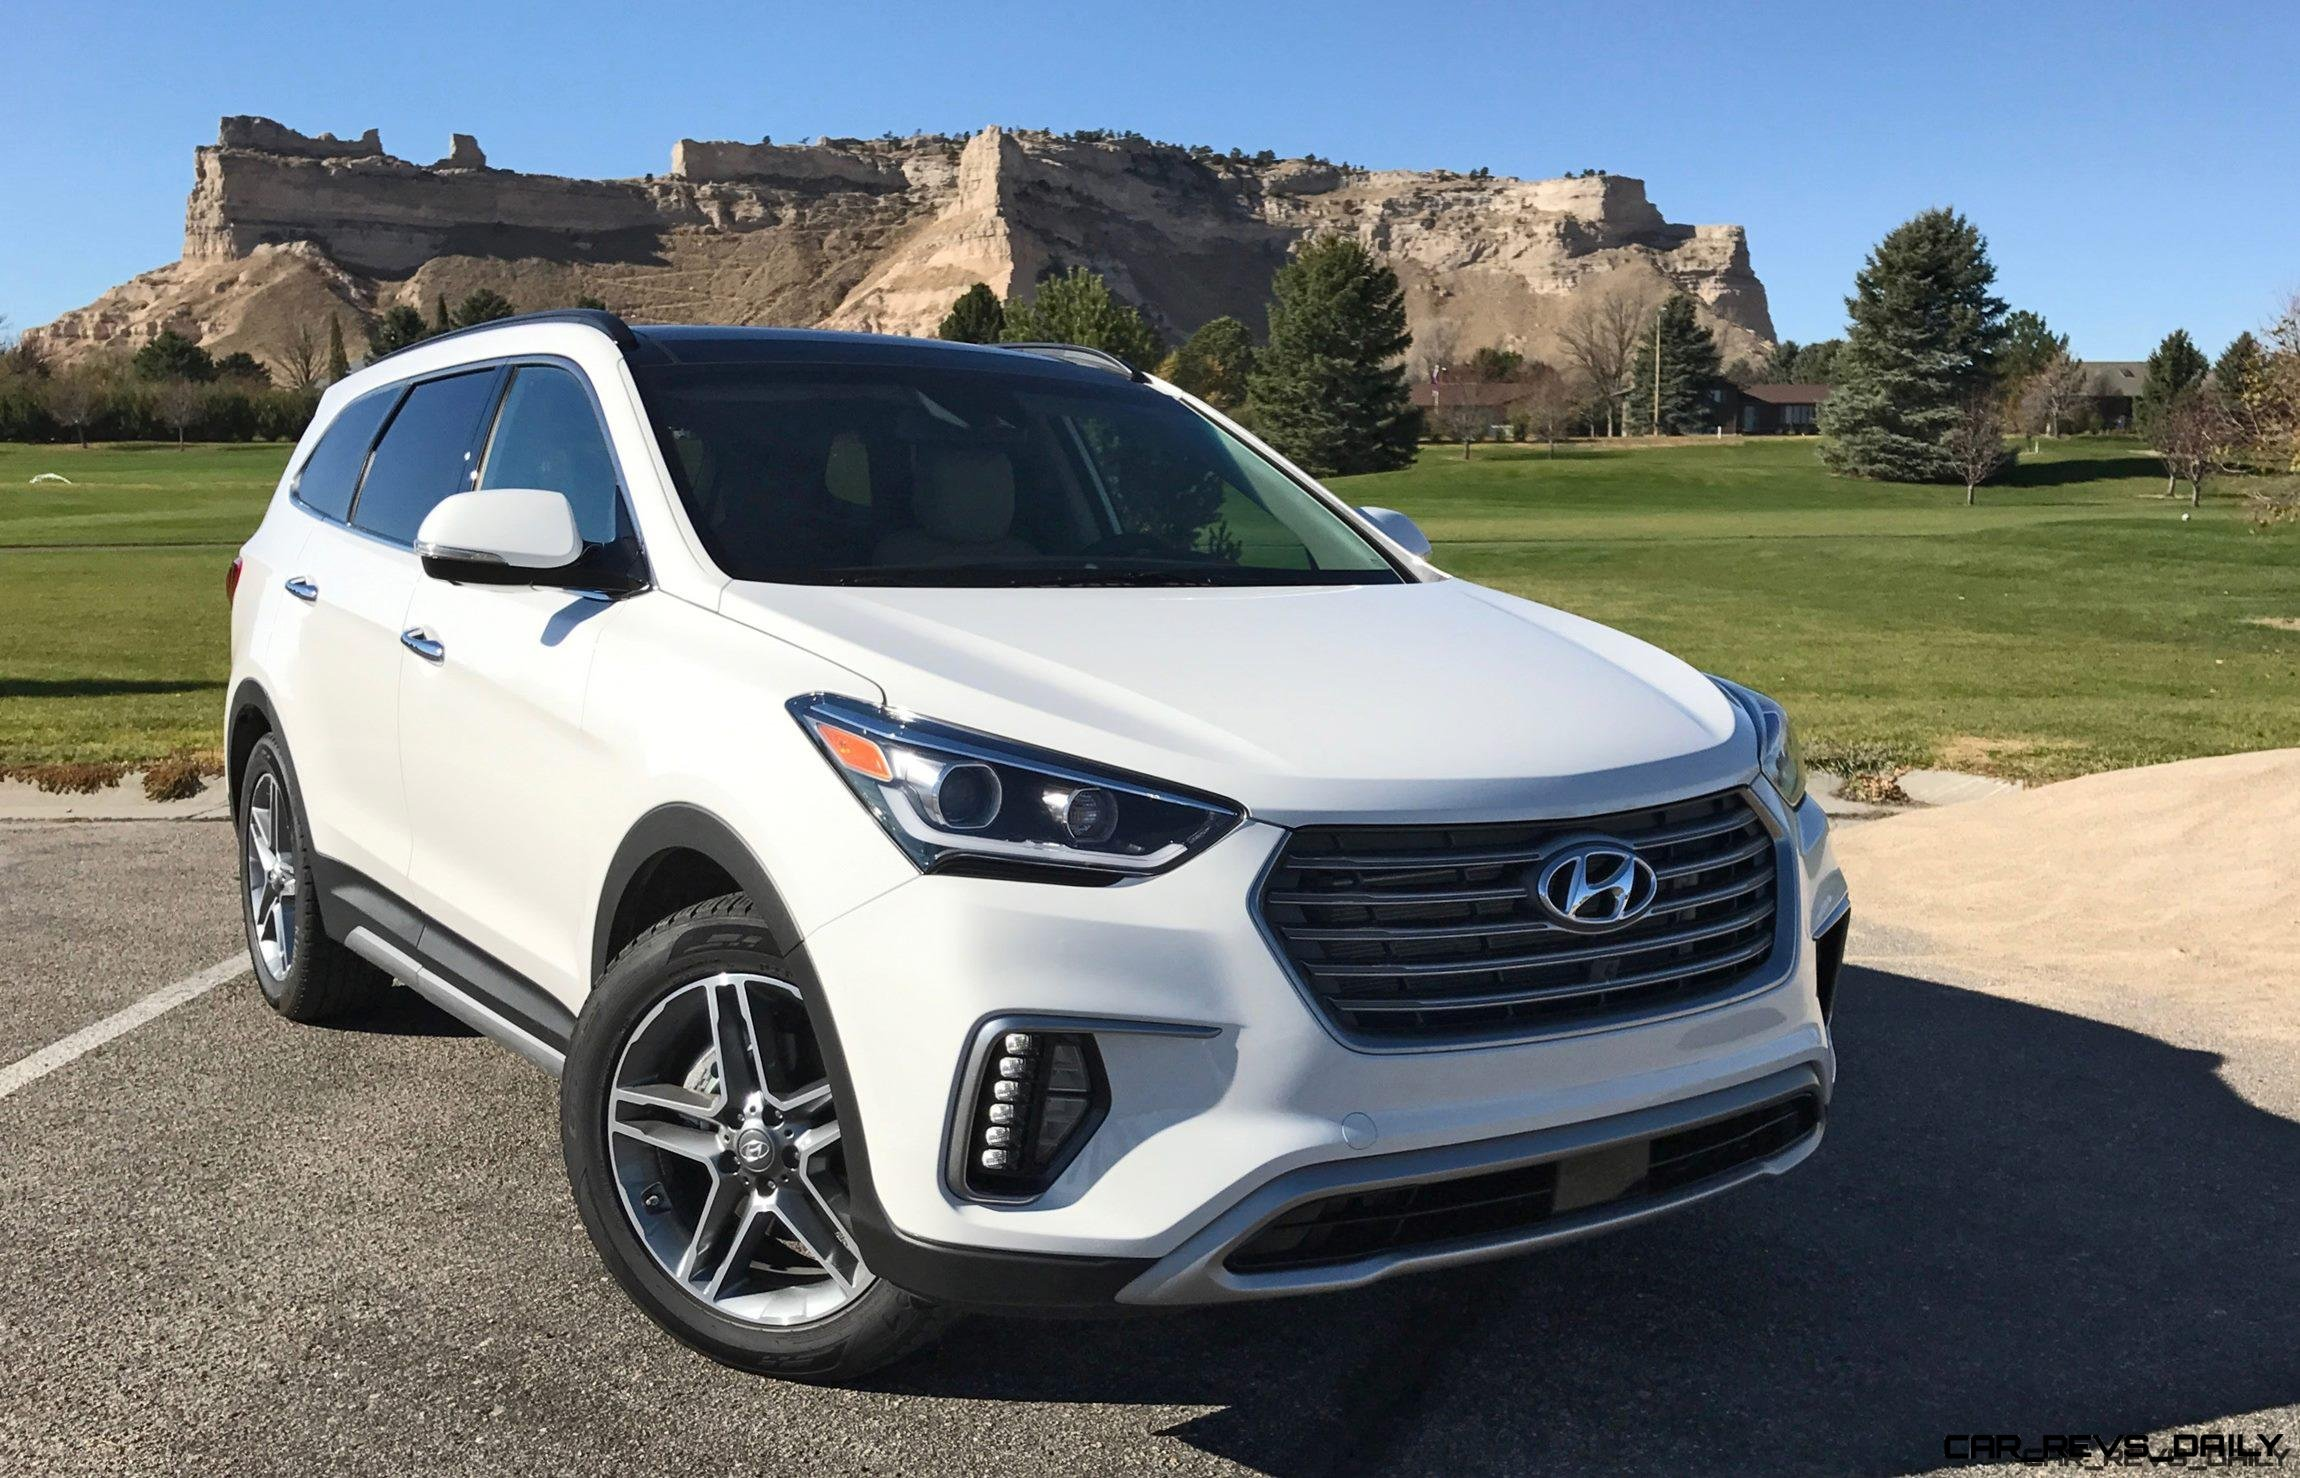 2017 Hyundai Santa Fe Ultimate Road Test Review By Tim Esterdahl